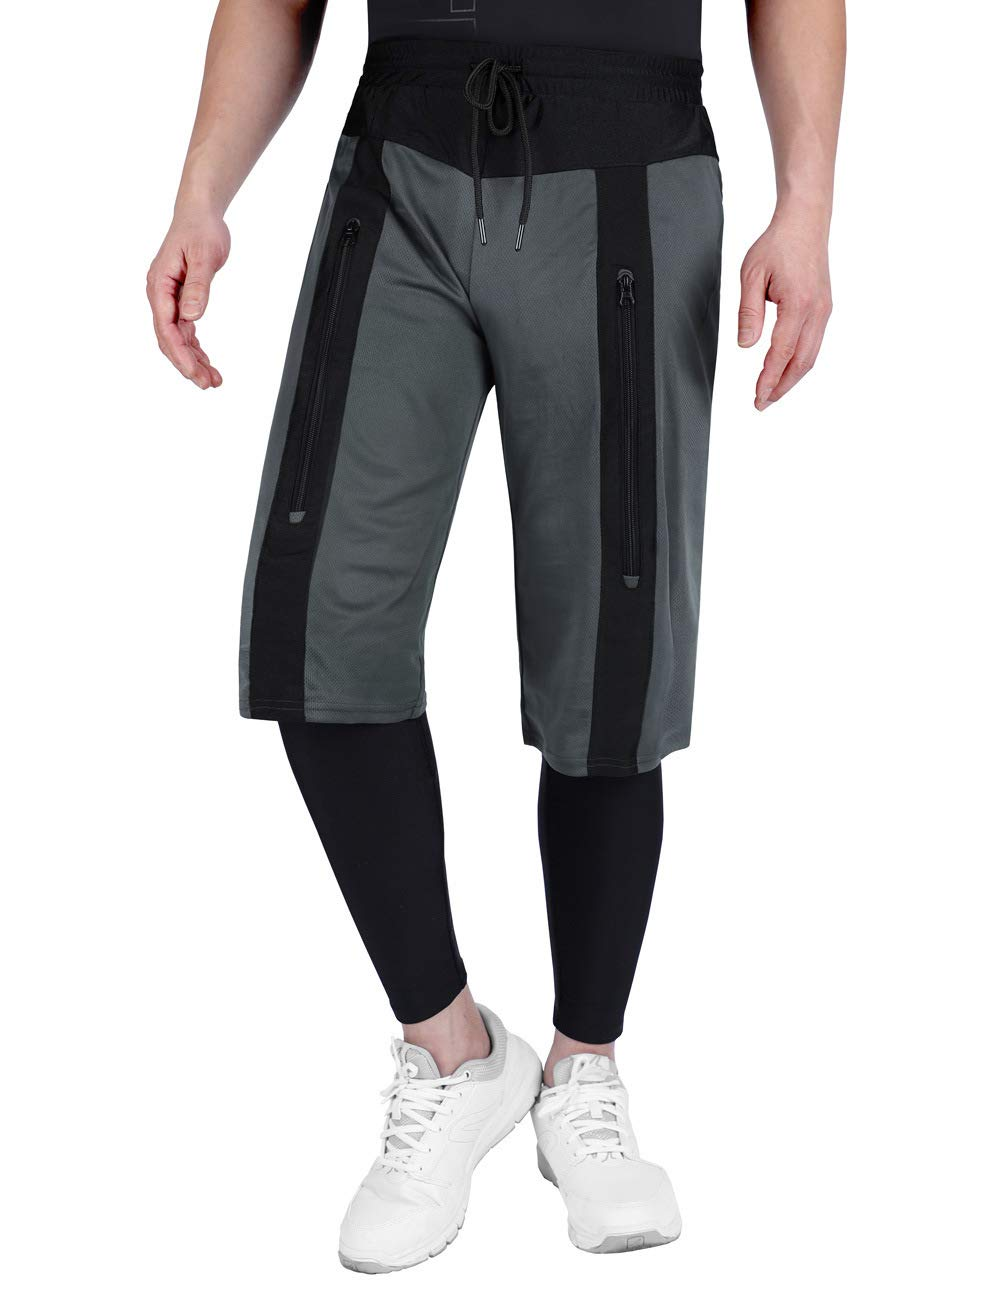 DISHANG Men's 2 in 1 Running Shorts Workout Training Gym Quick Dry Bodybuliding Workout Active Training Pants